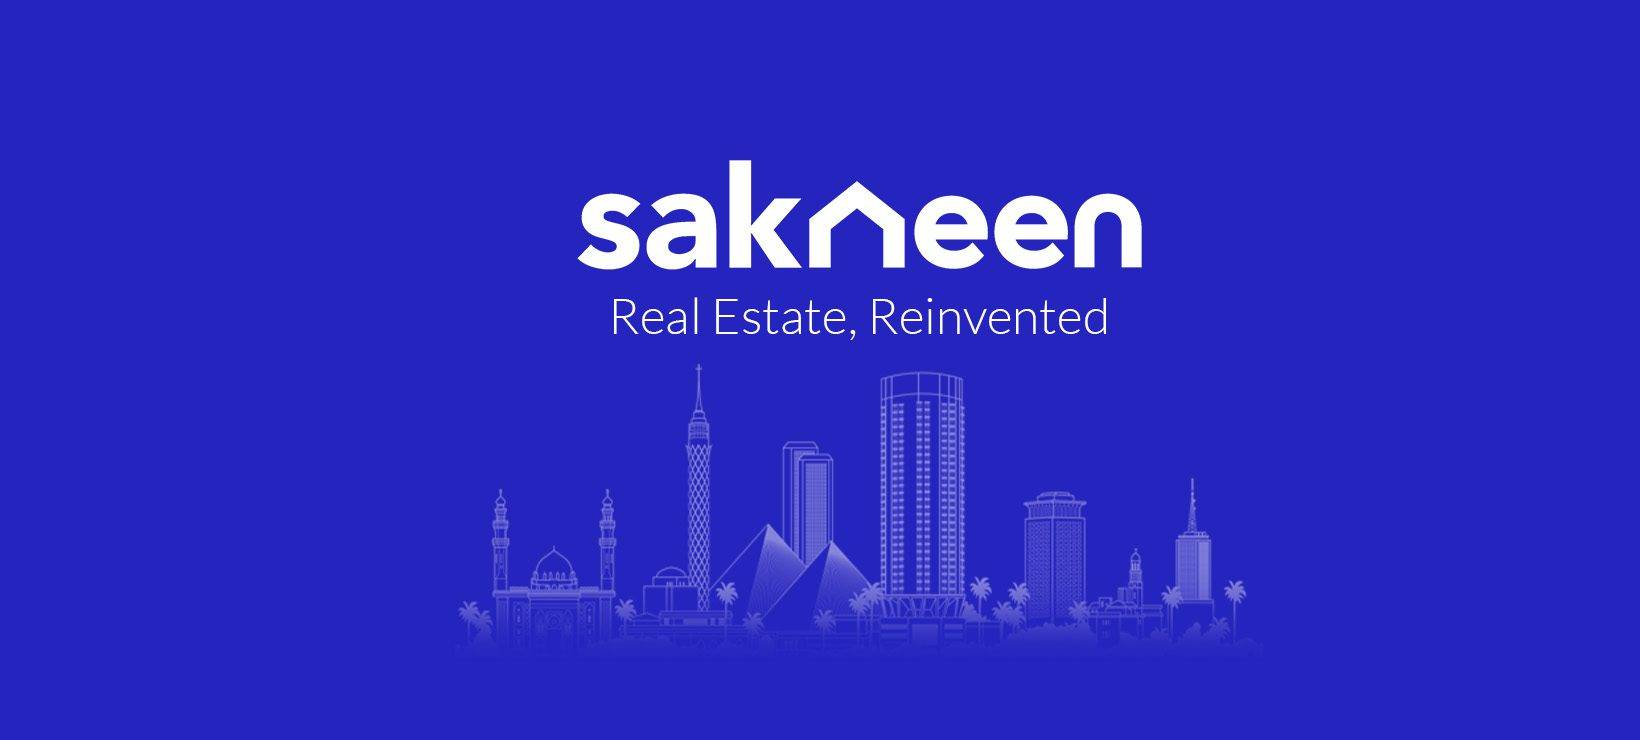 Egyptian PropTech Startup Sakneen Raises USD 1.1 Mn In Seed Funding